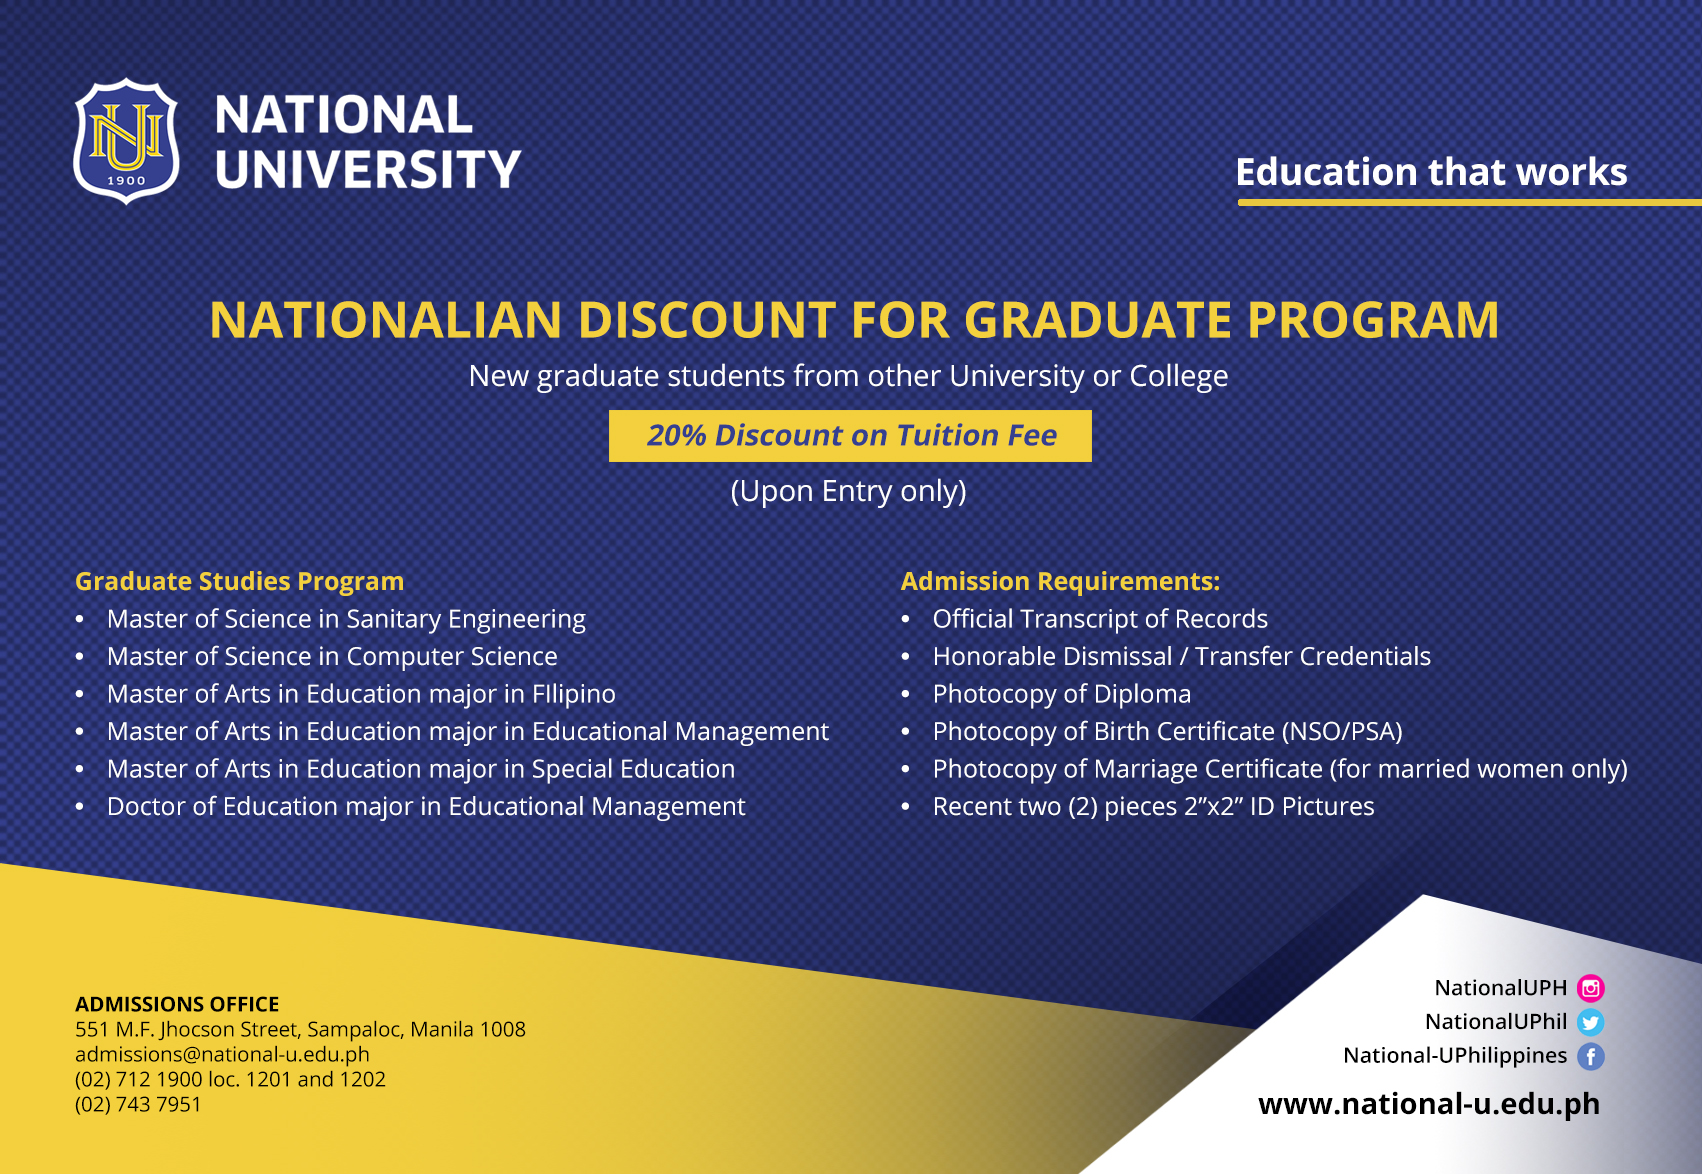 National University – Education that works